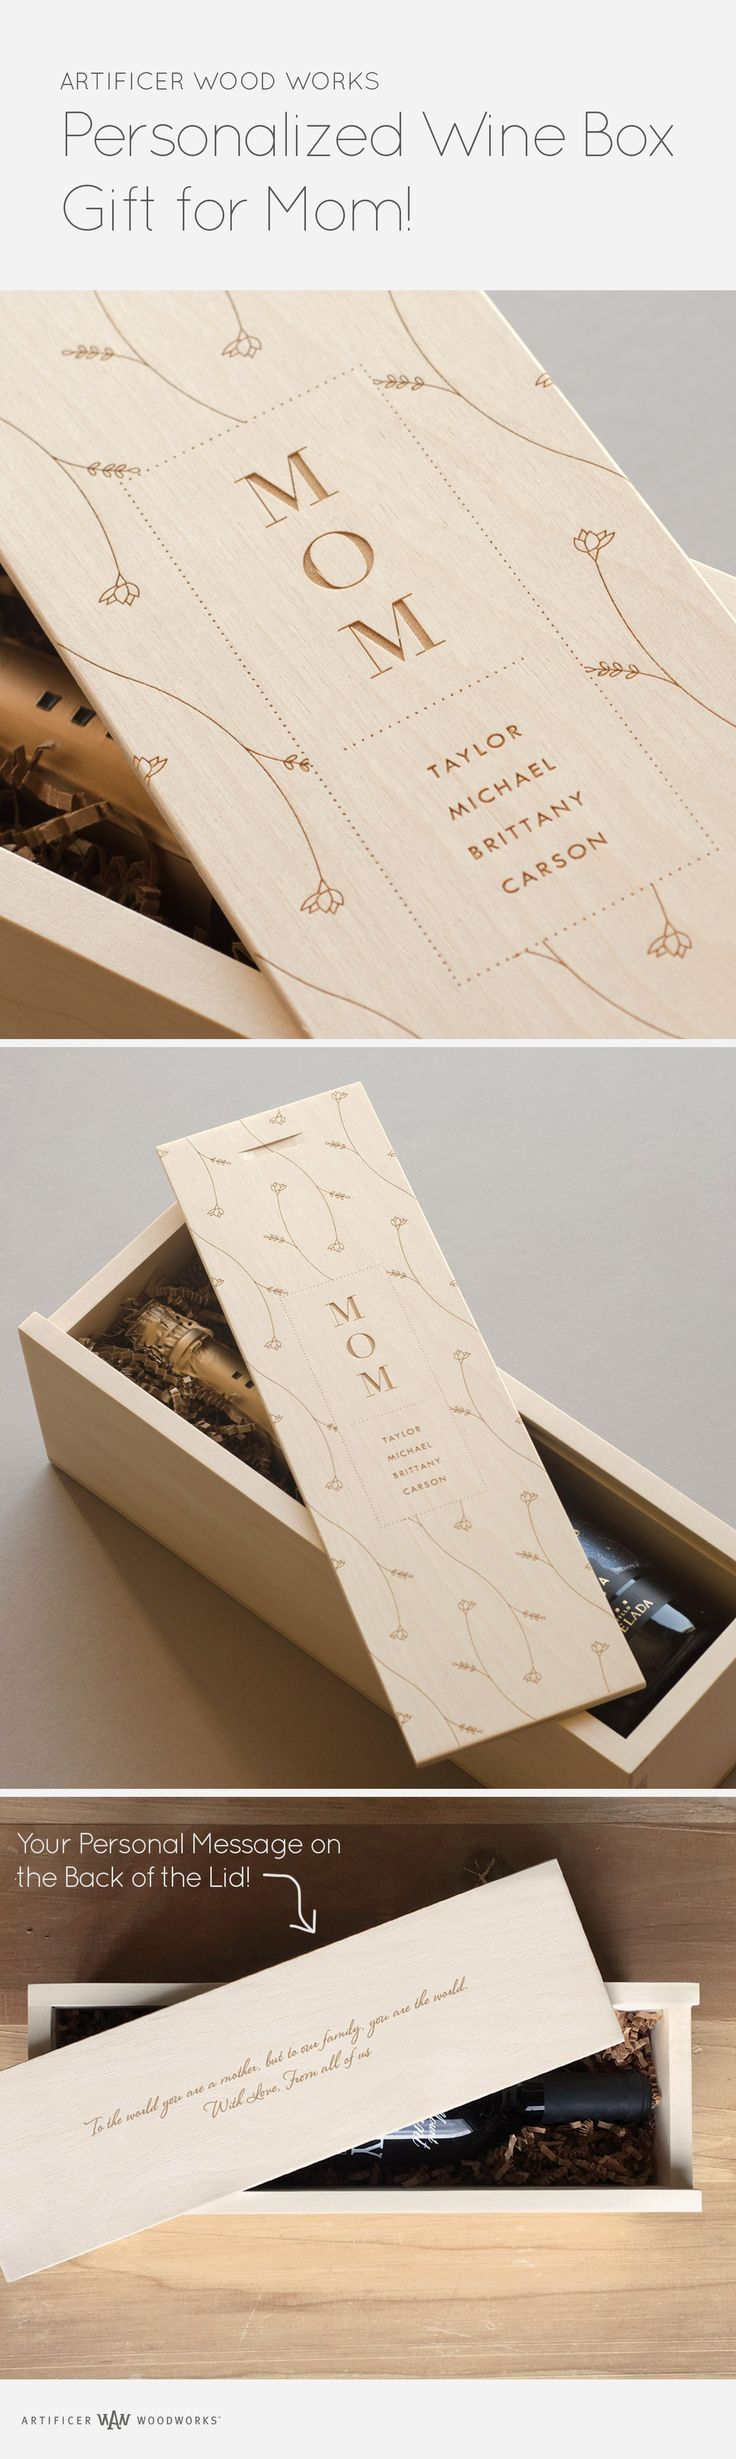 A beautiful wine box gift for Mom